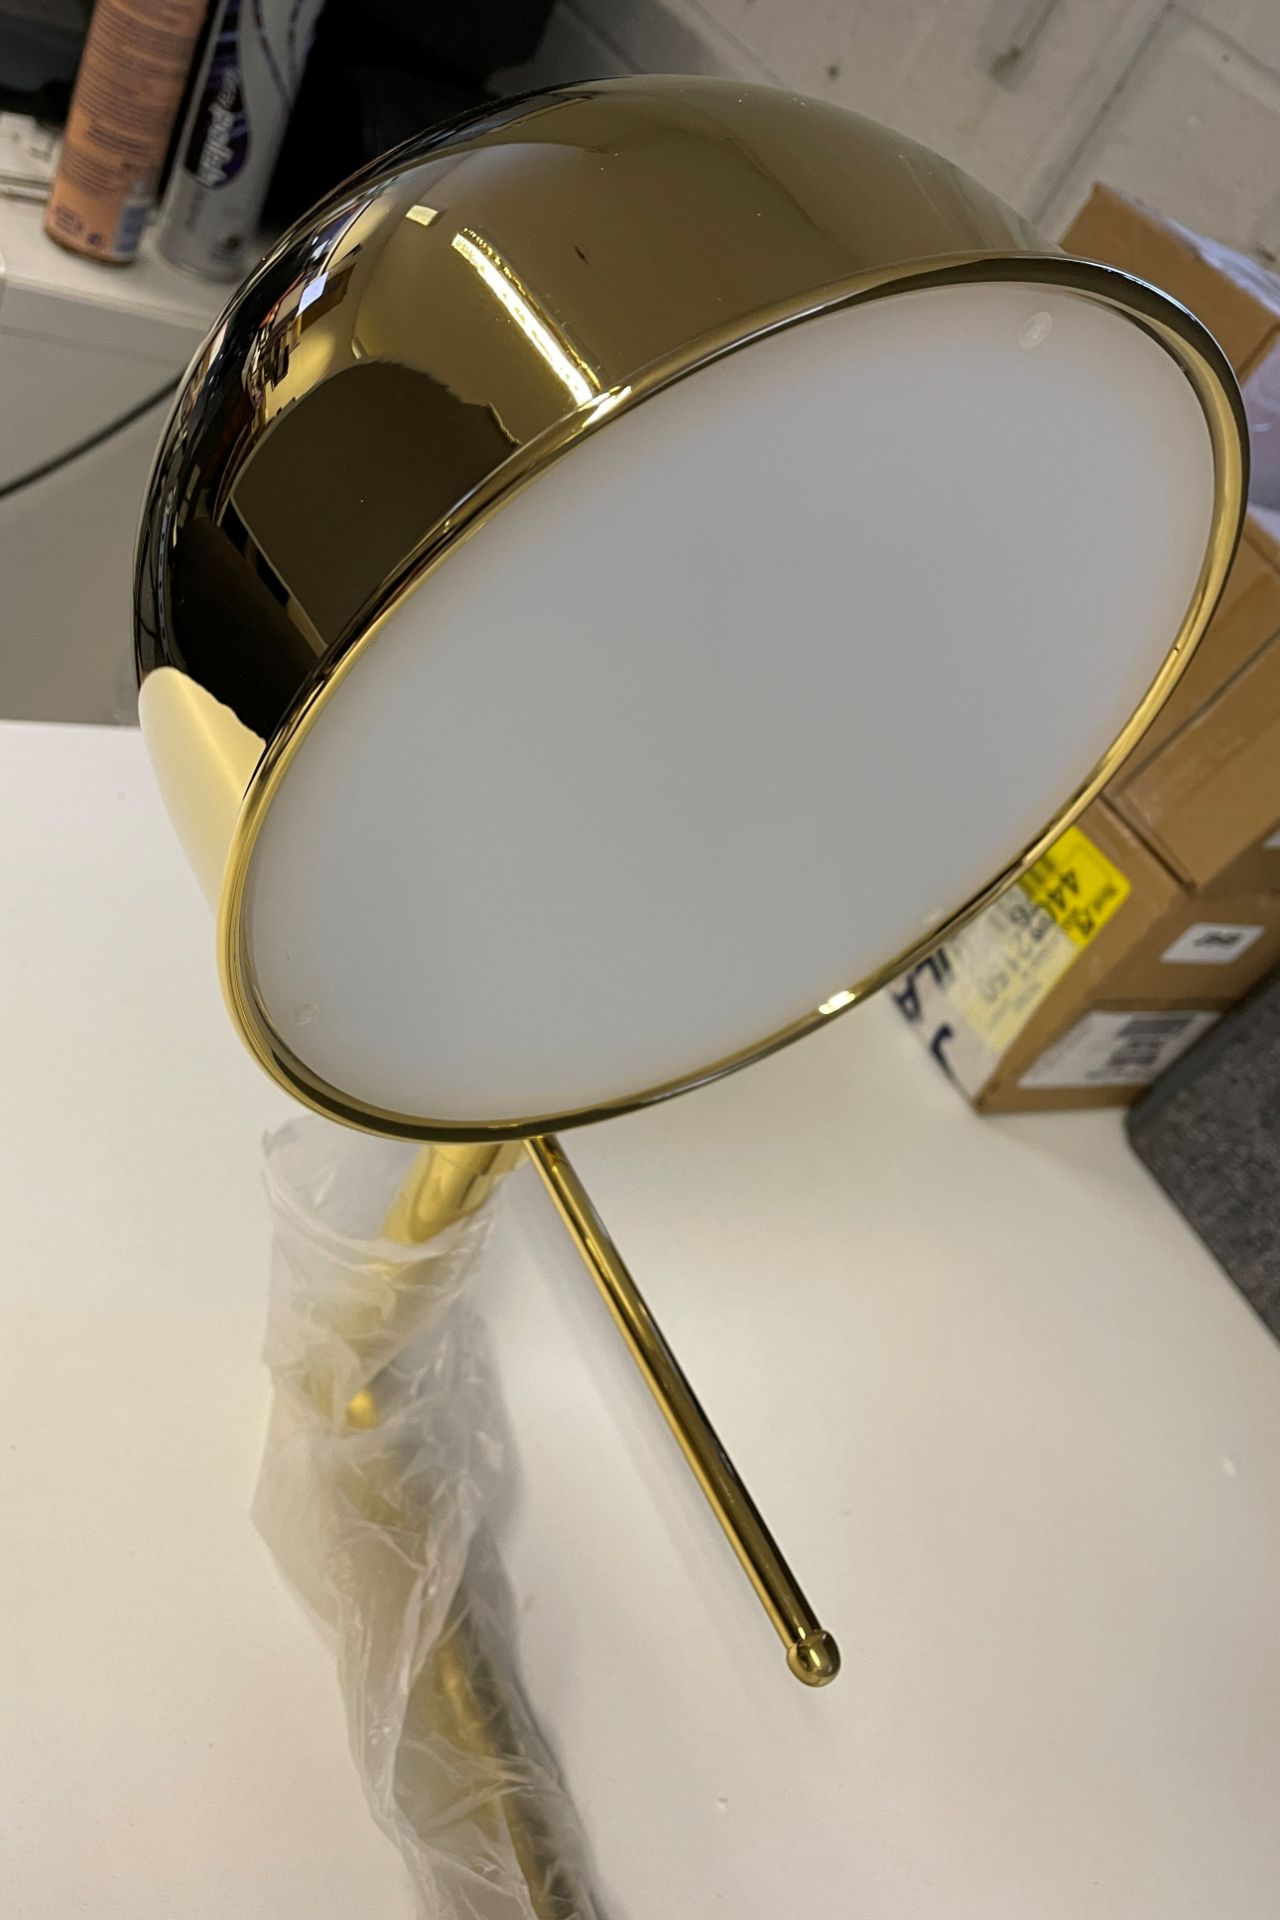 1 x Tall 119cm Polished Brass Wall Light with large adjustable round head (Diameter 21cm) with Wal - Image 3 of 18